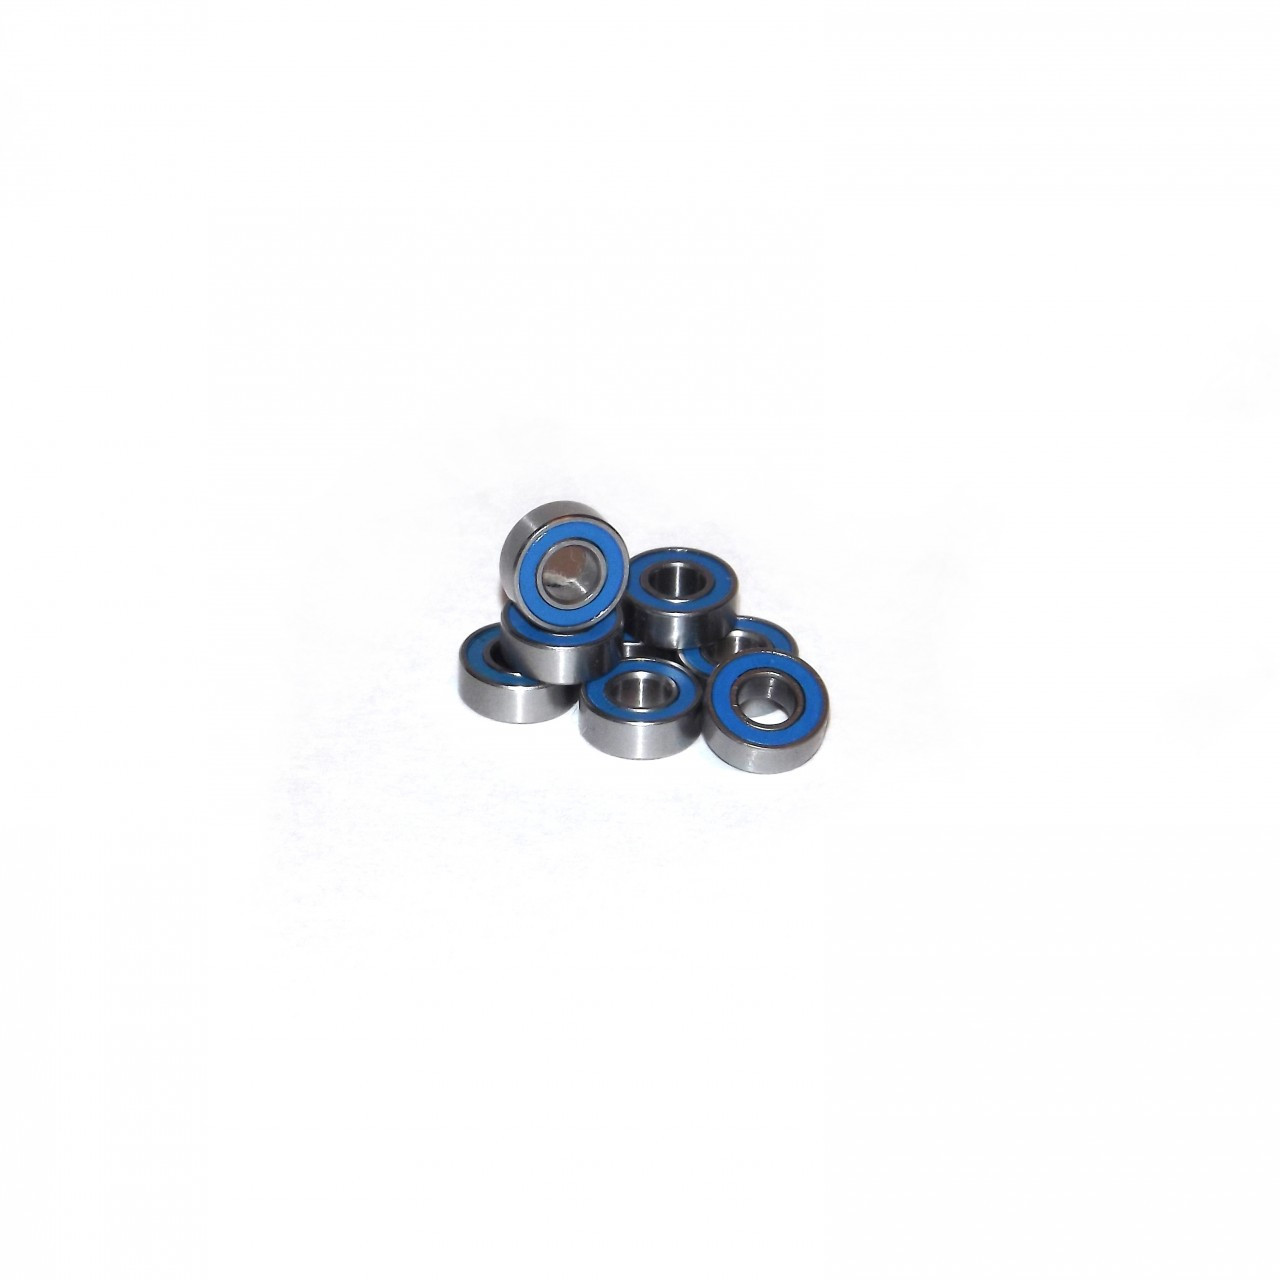 Traxxas Electric Rustler / Stampede 8 Piece wheel bearing kit.   Can be used on all Electric Rustler and Stampede trucks!